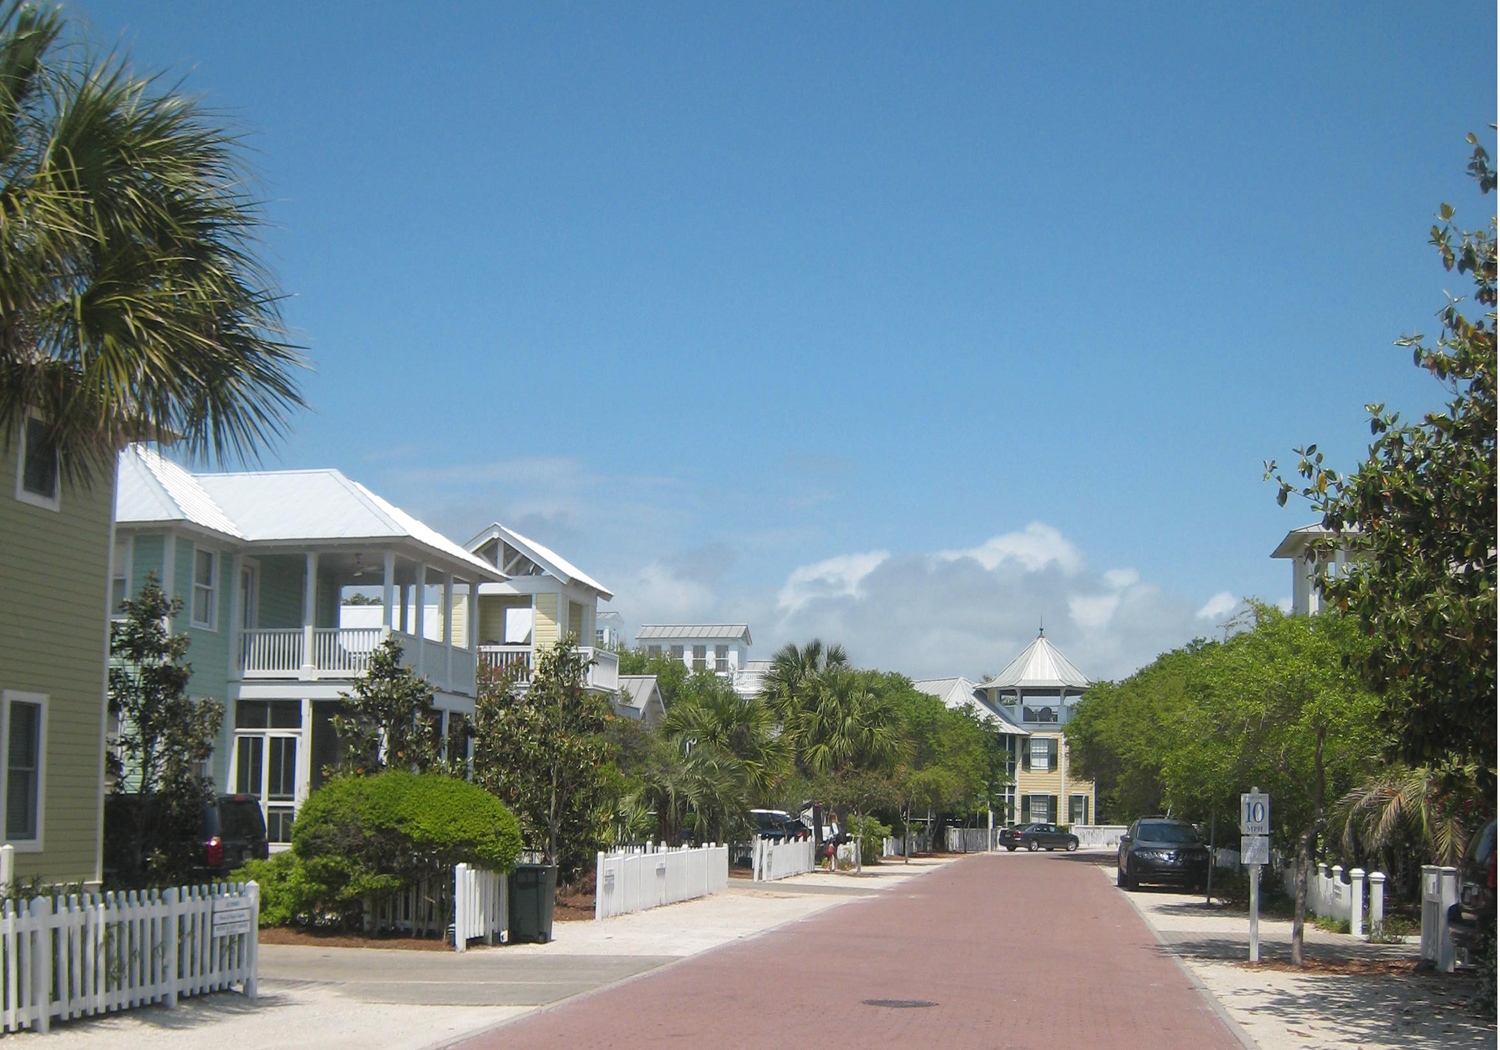 Cottages from seaside florida part 1 stately kitsch for Seaside fl